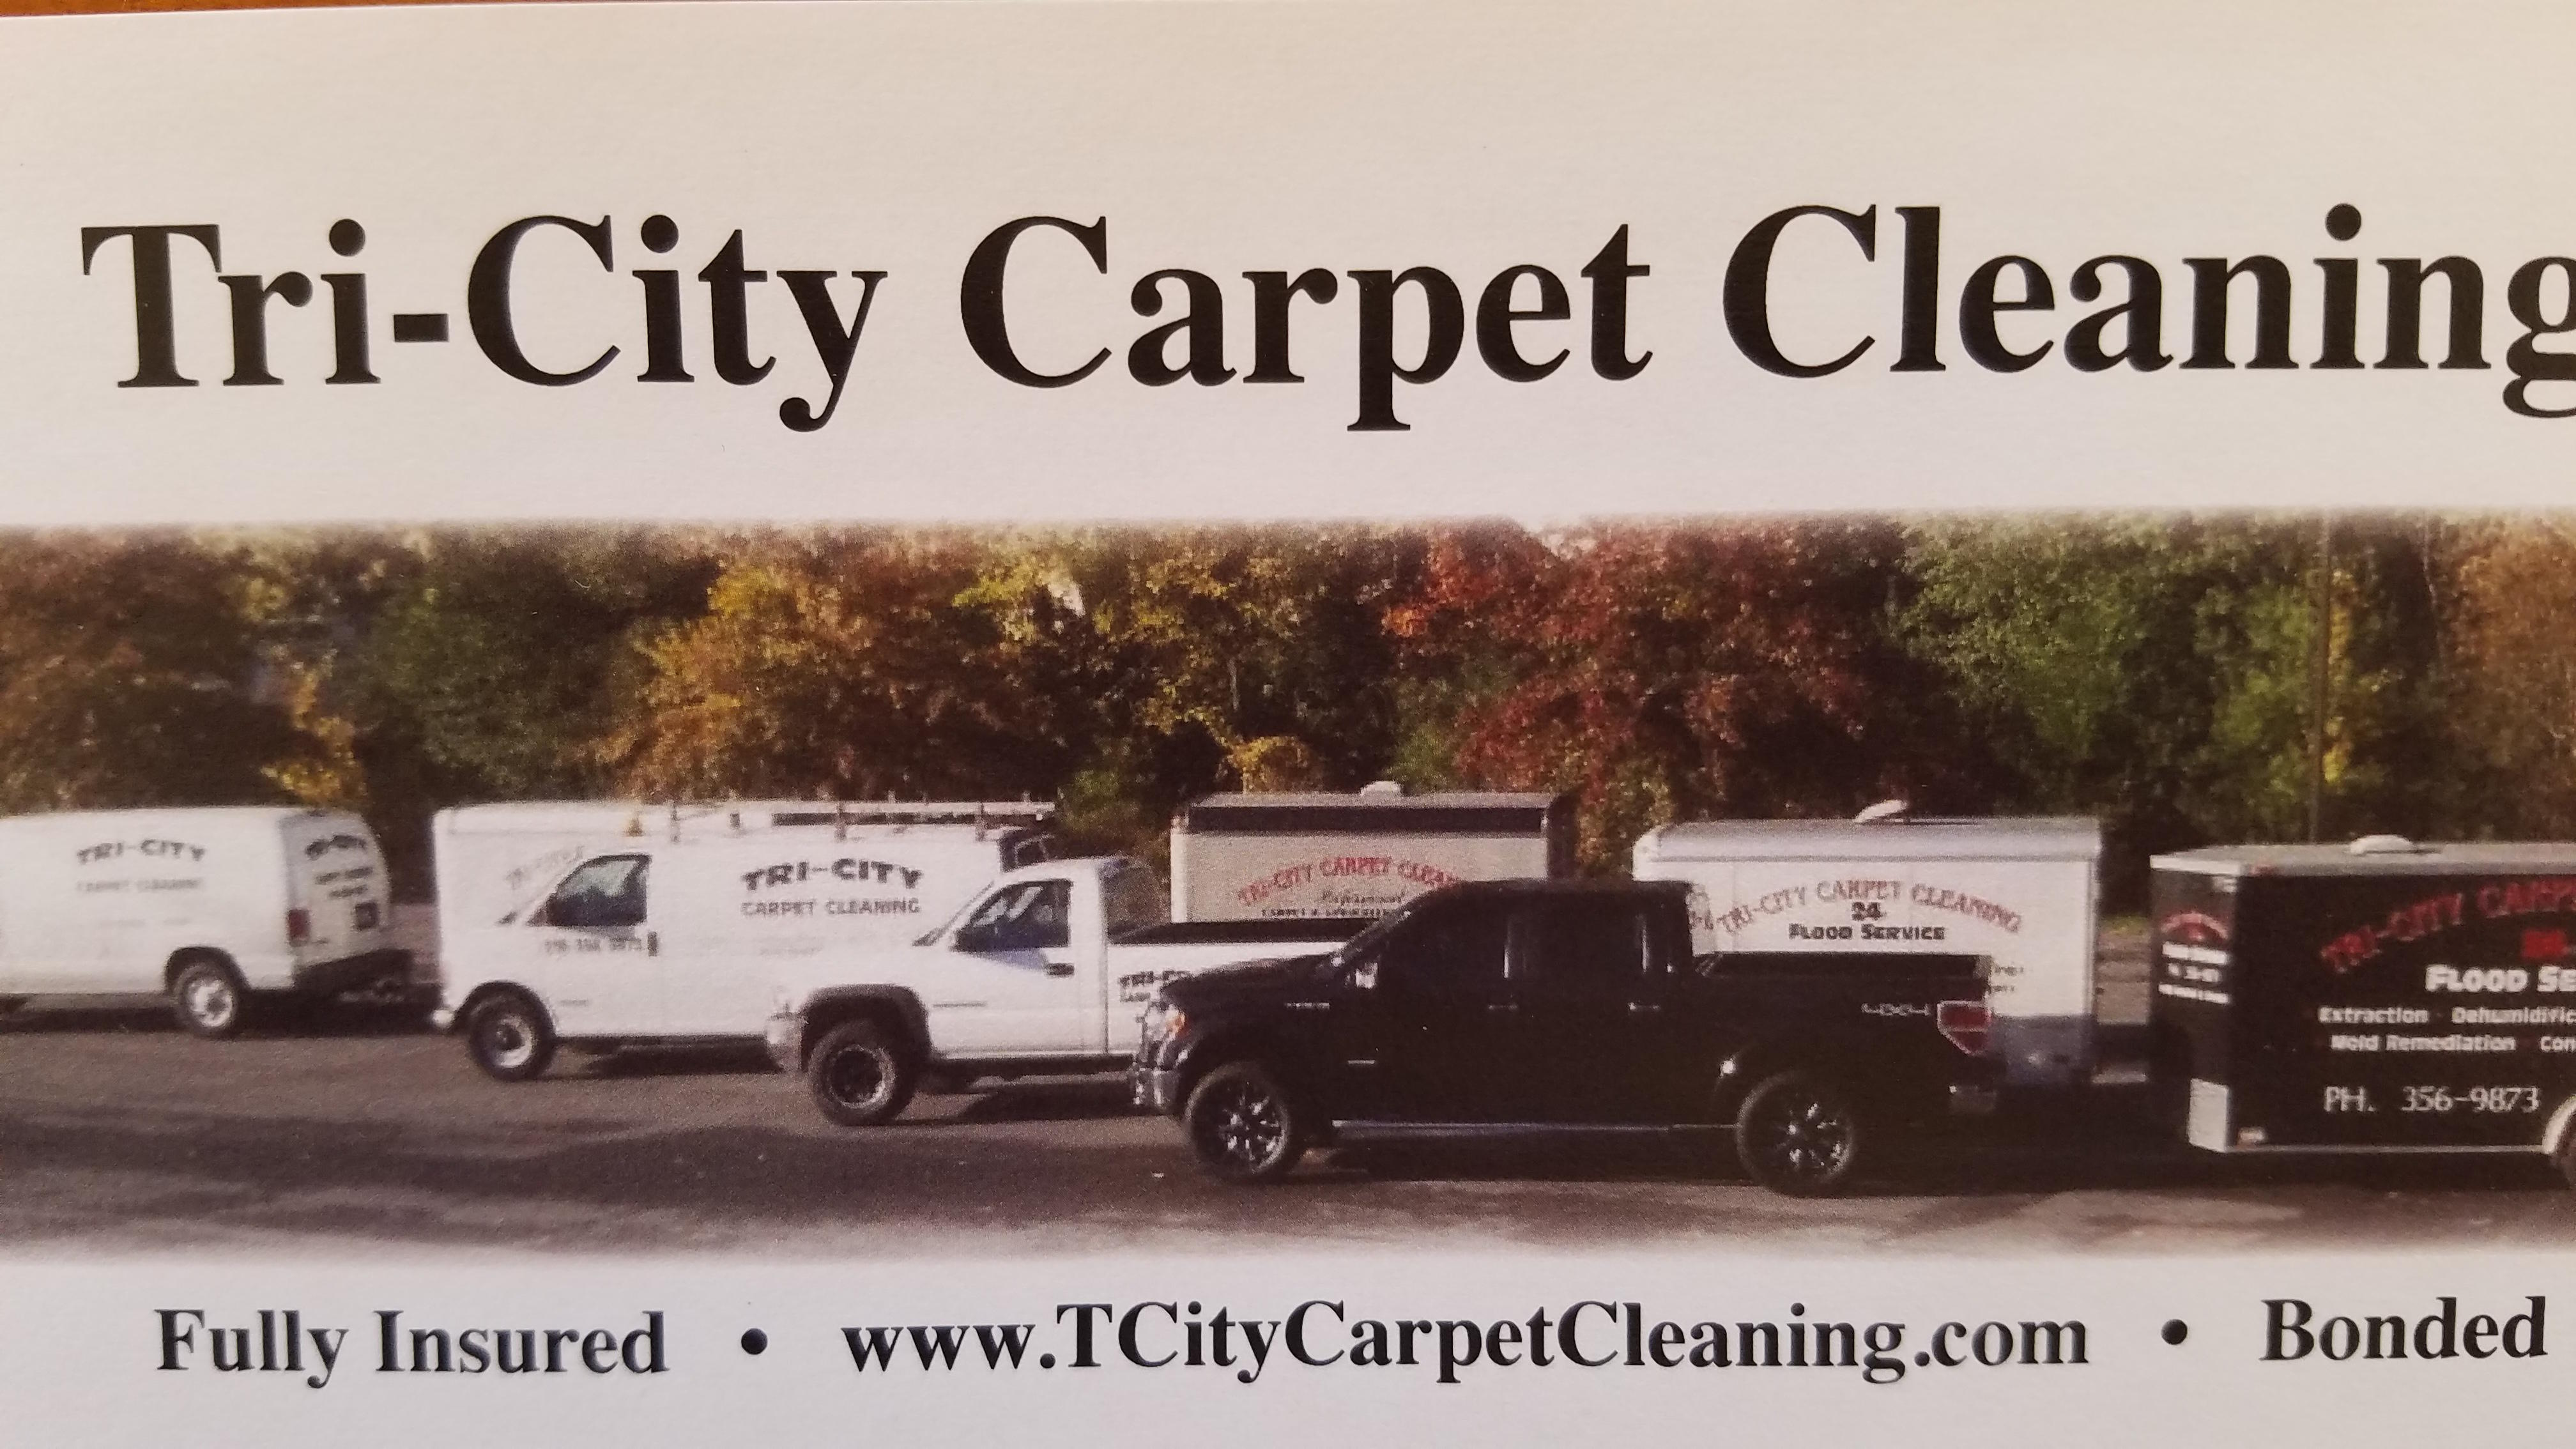 TRI-CITY CARPET CLEANING image 1